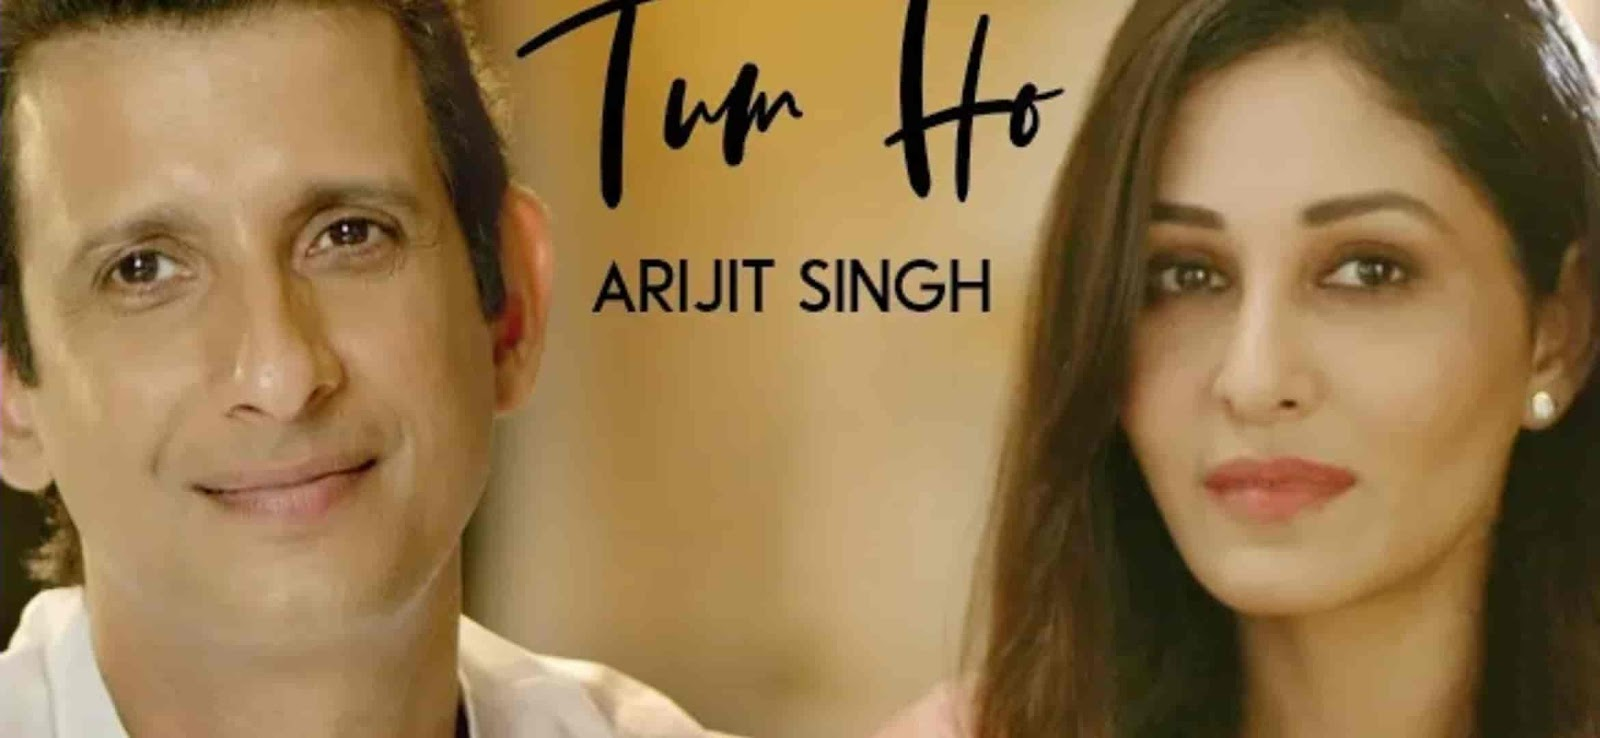 Tum Ho Song Images By Arijit Singh